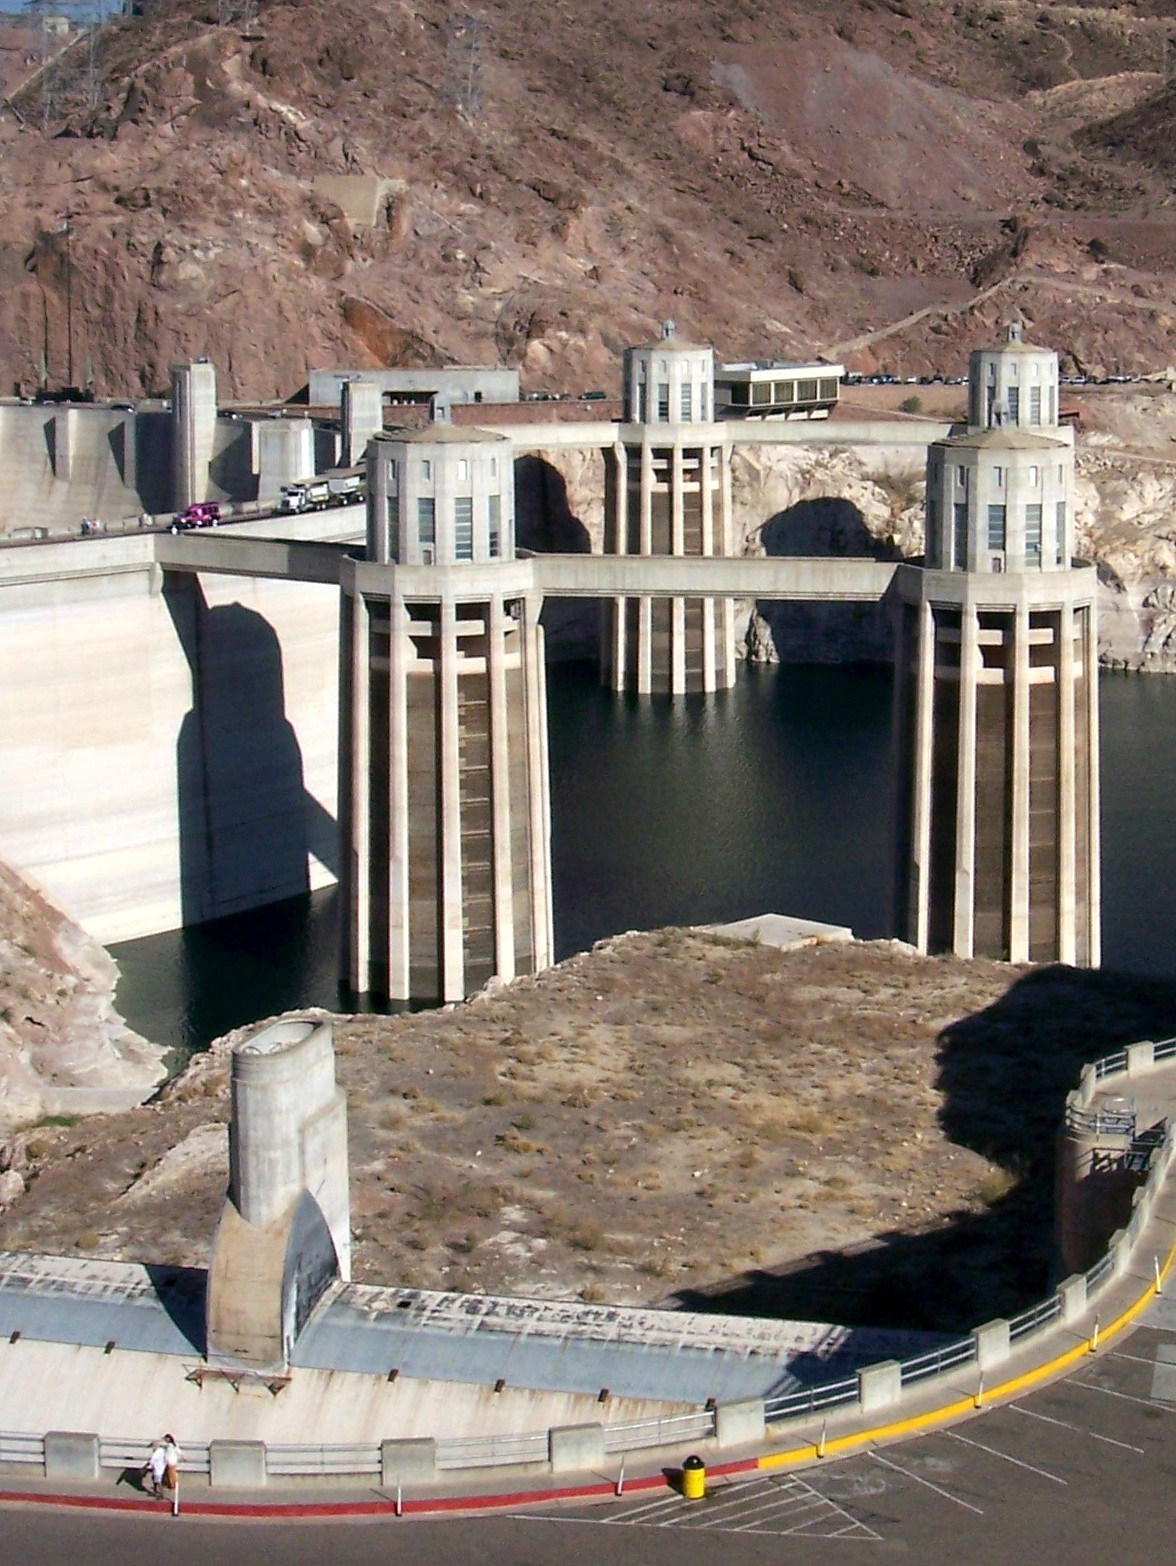 Hoover Dam – Travel with Intent